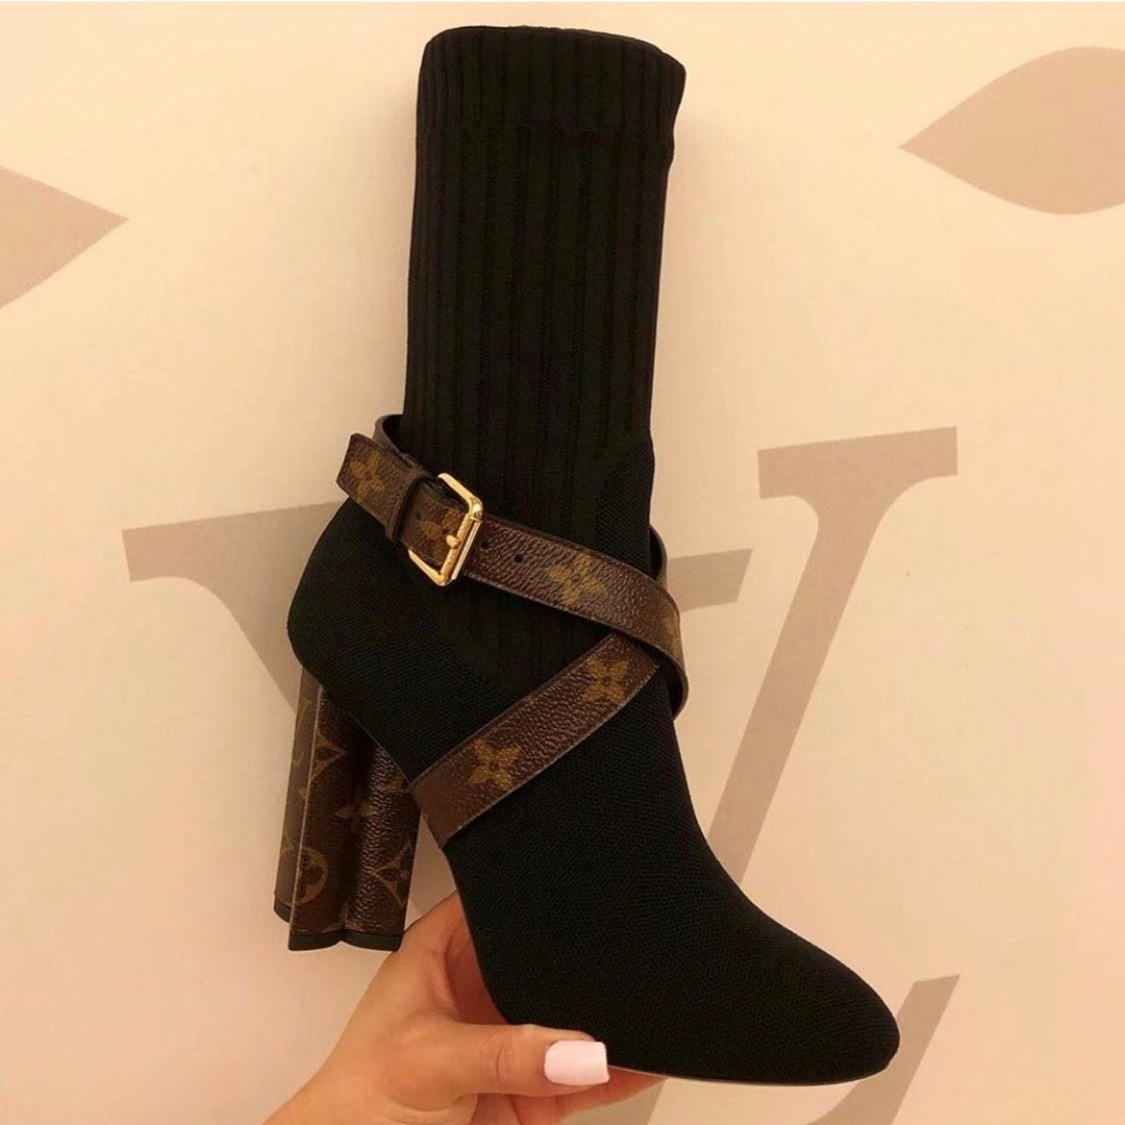 Silhouette Ankle Boot